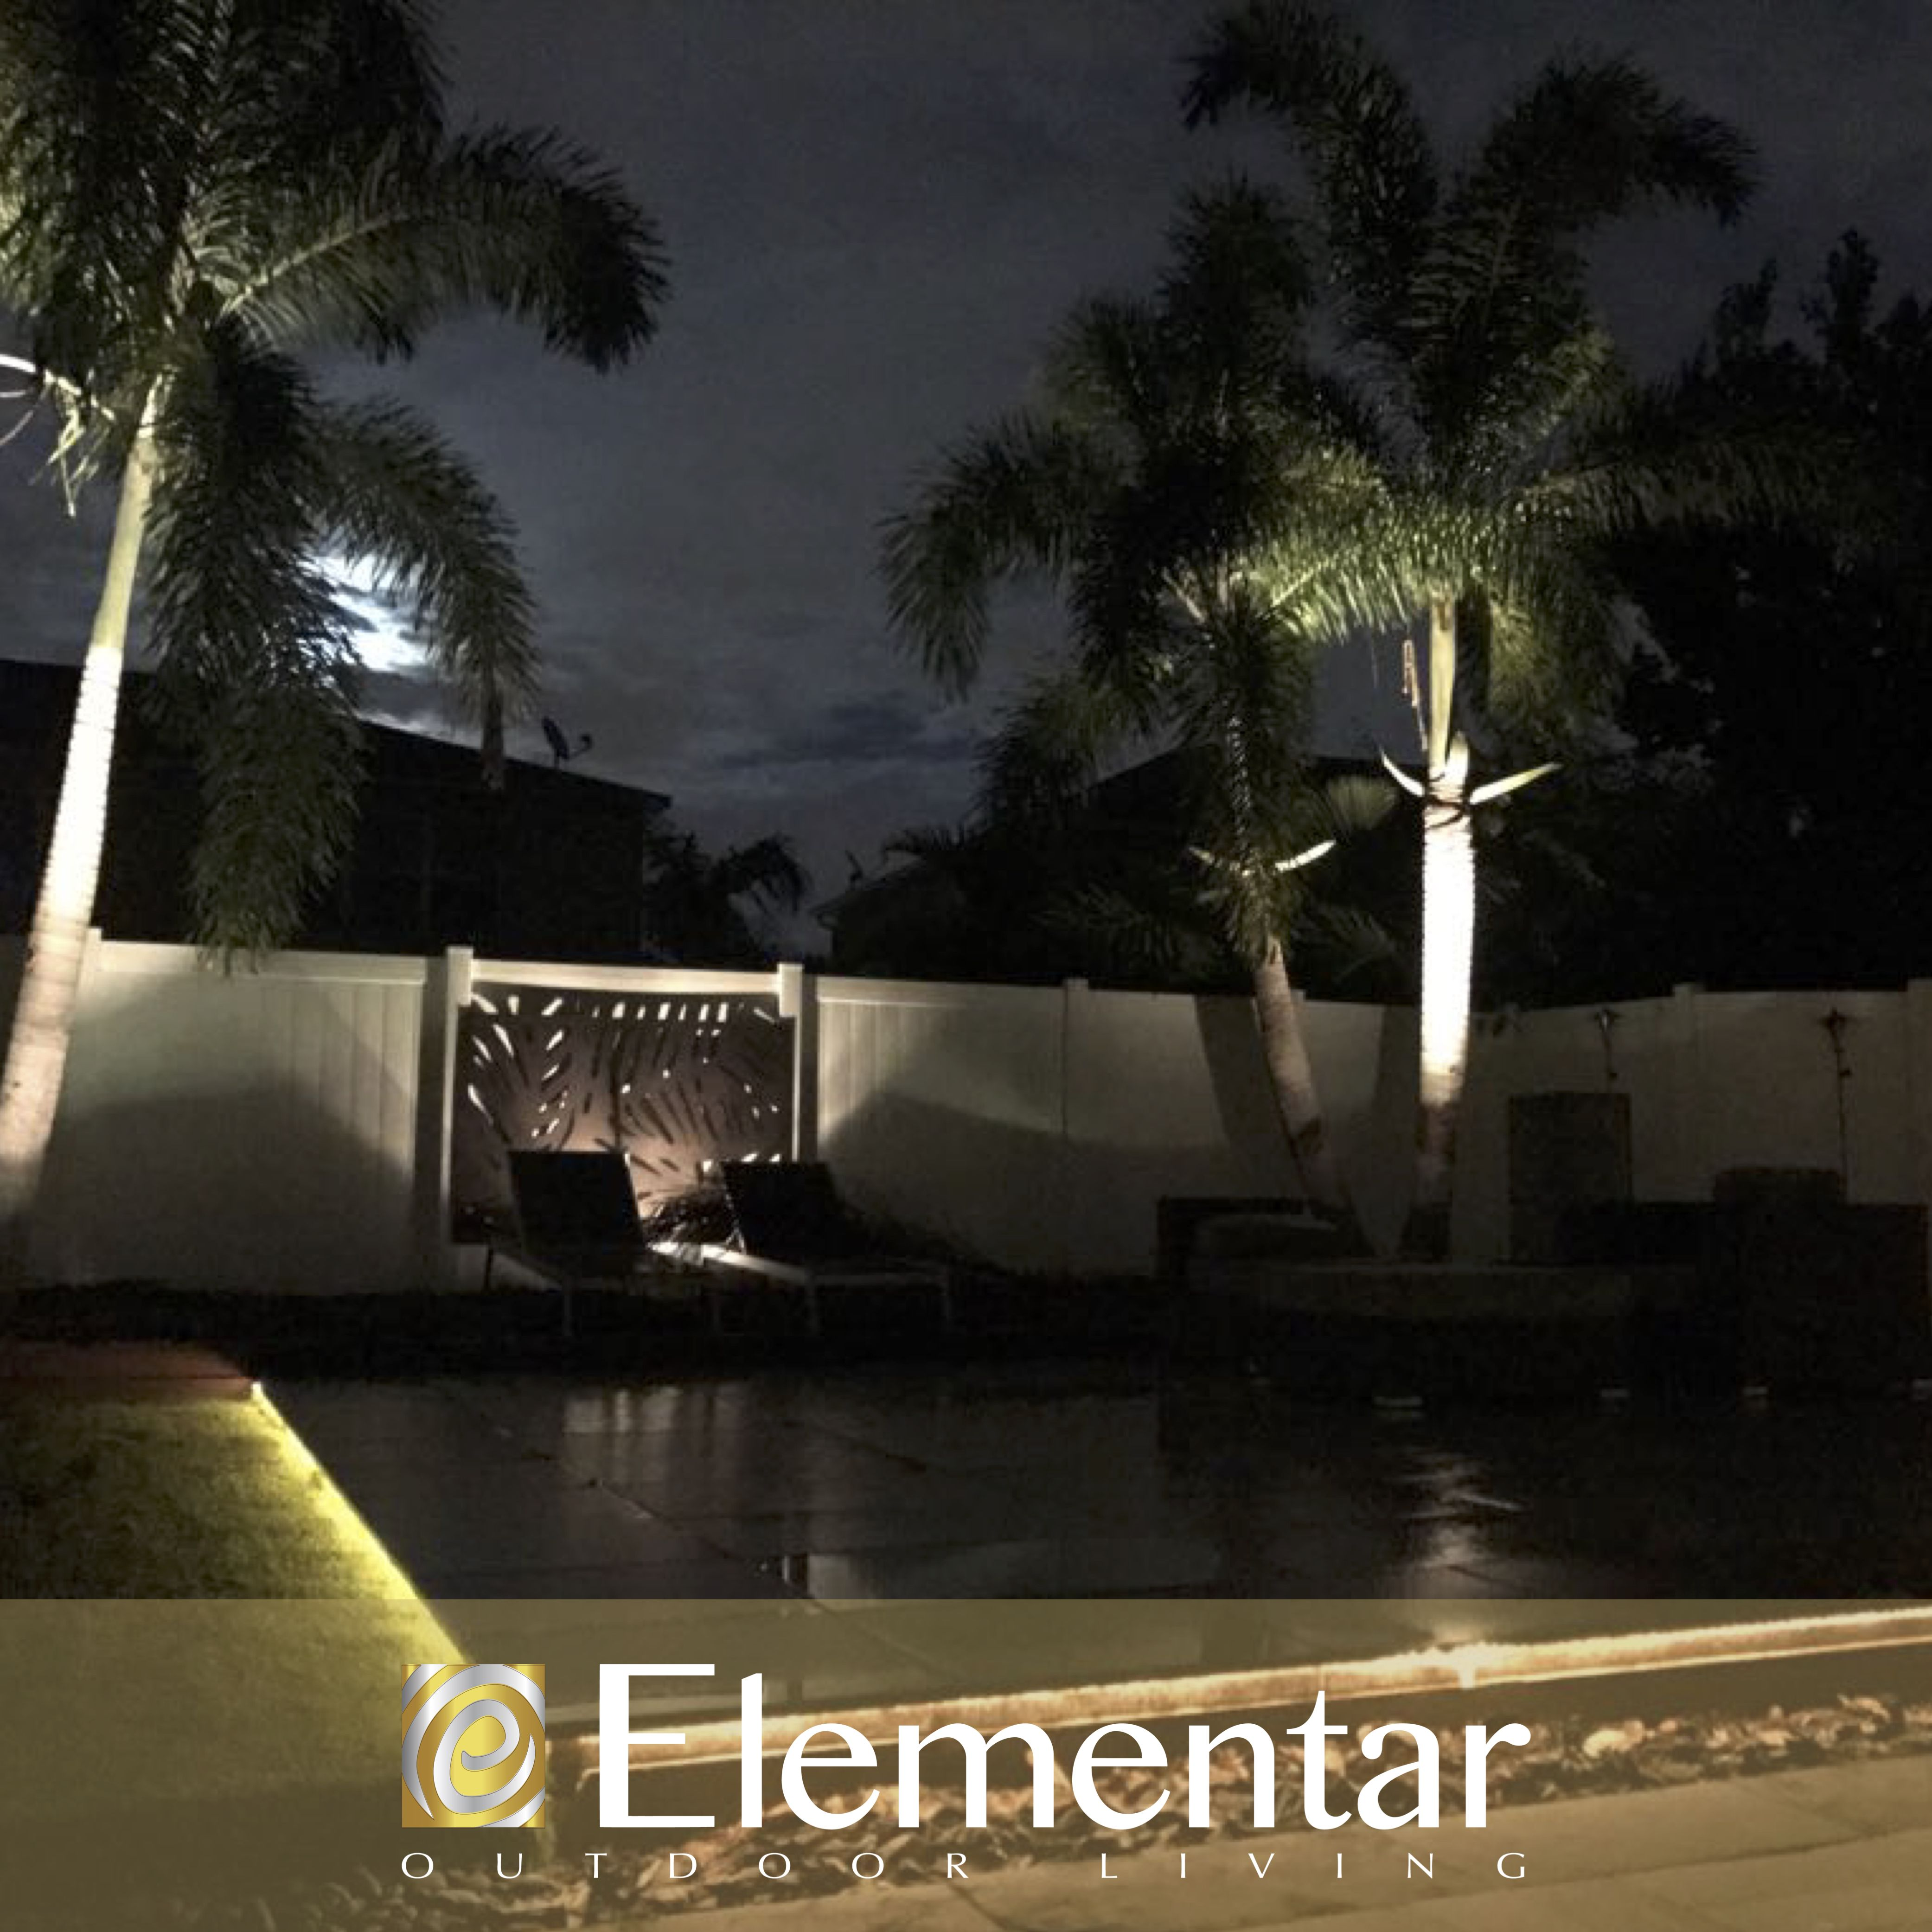 Take a step back, evaluate what is important, and enjoy ... on Elementar Outdoor Living  id=67301